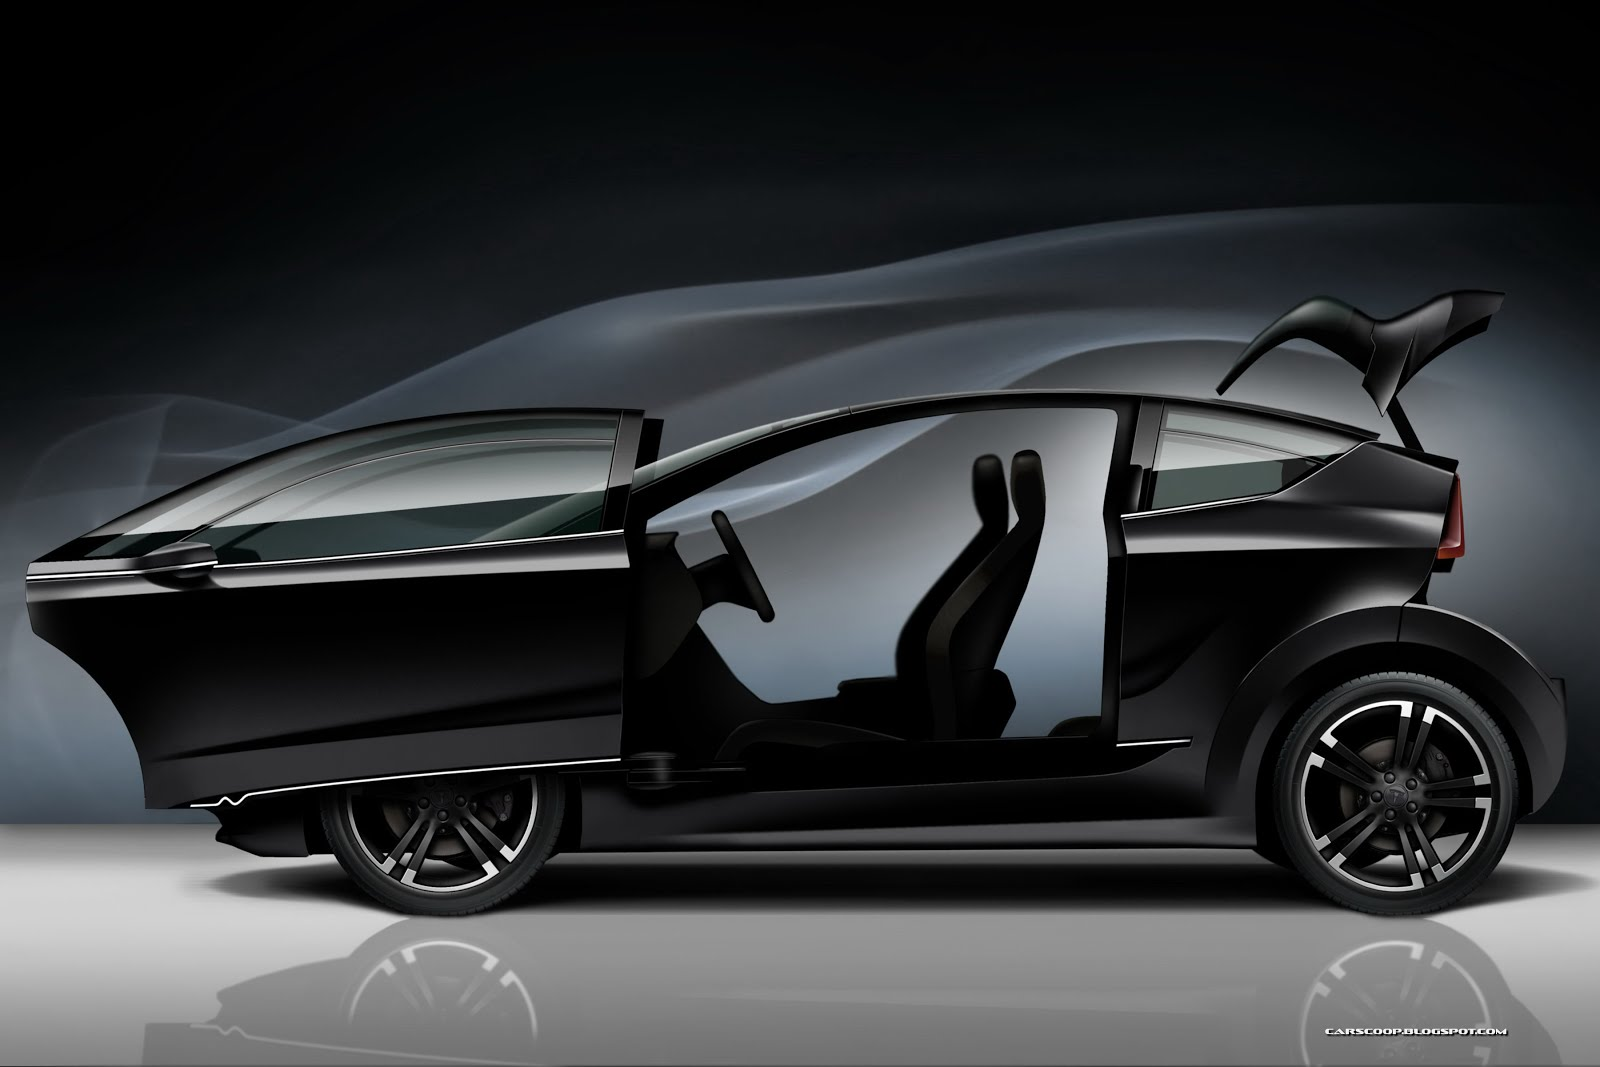 Tesla Model C Concept Study for a Compact Electric Hatch by picture High Resolution Wallpaper Free